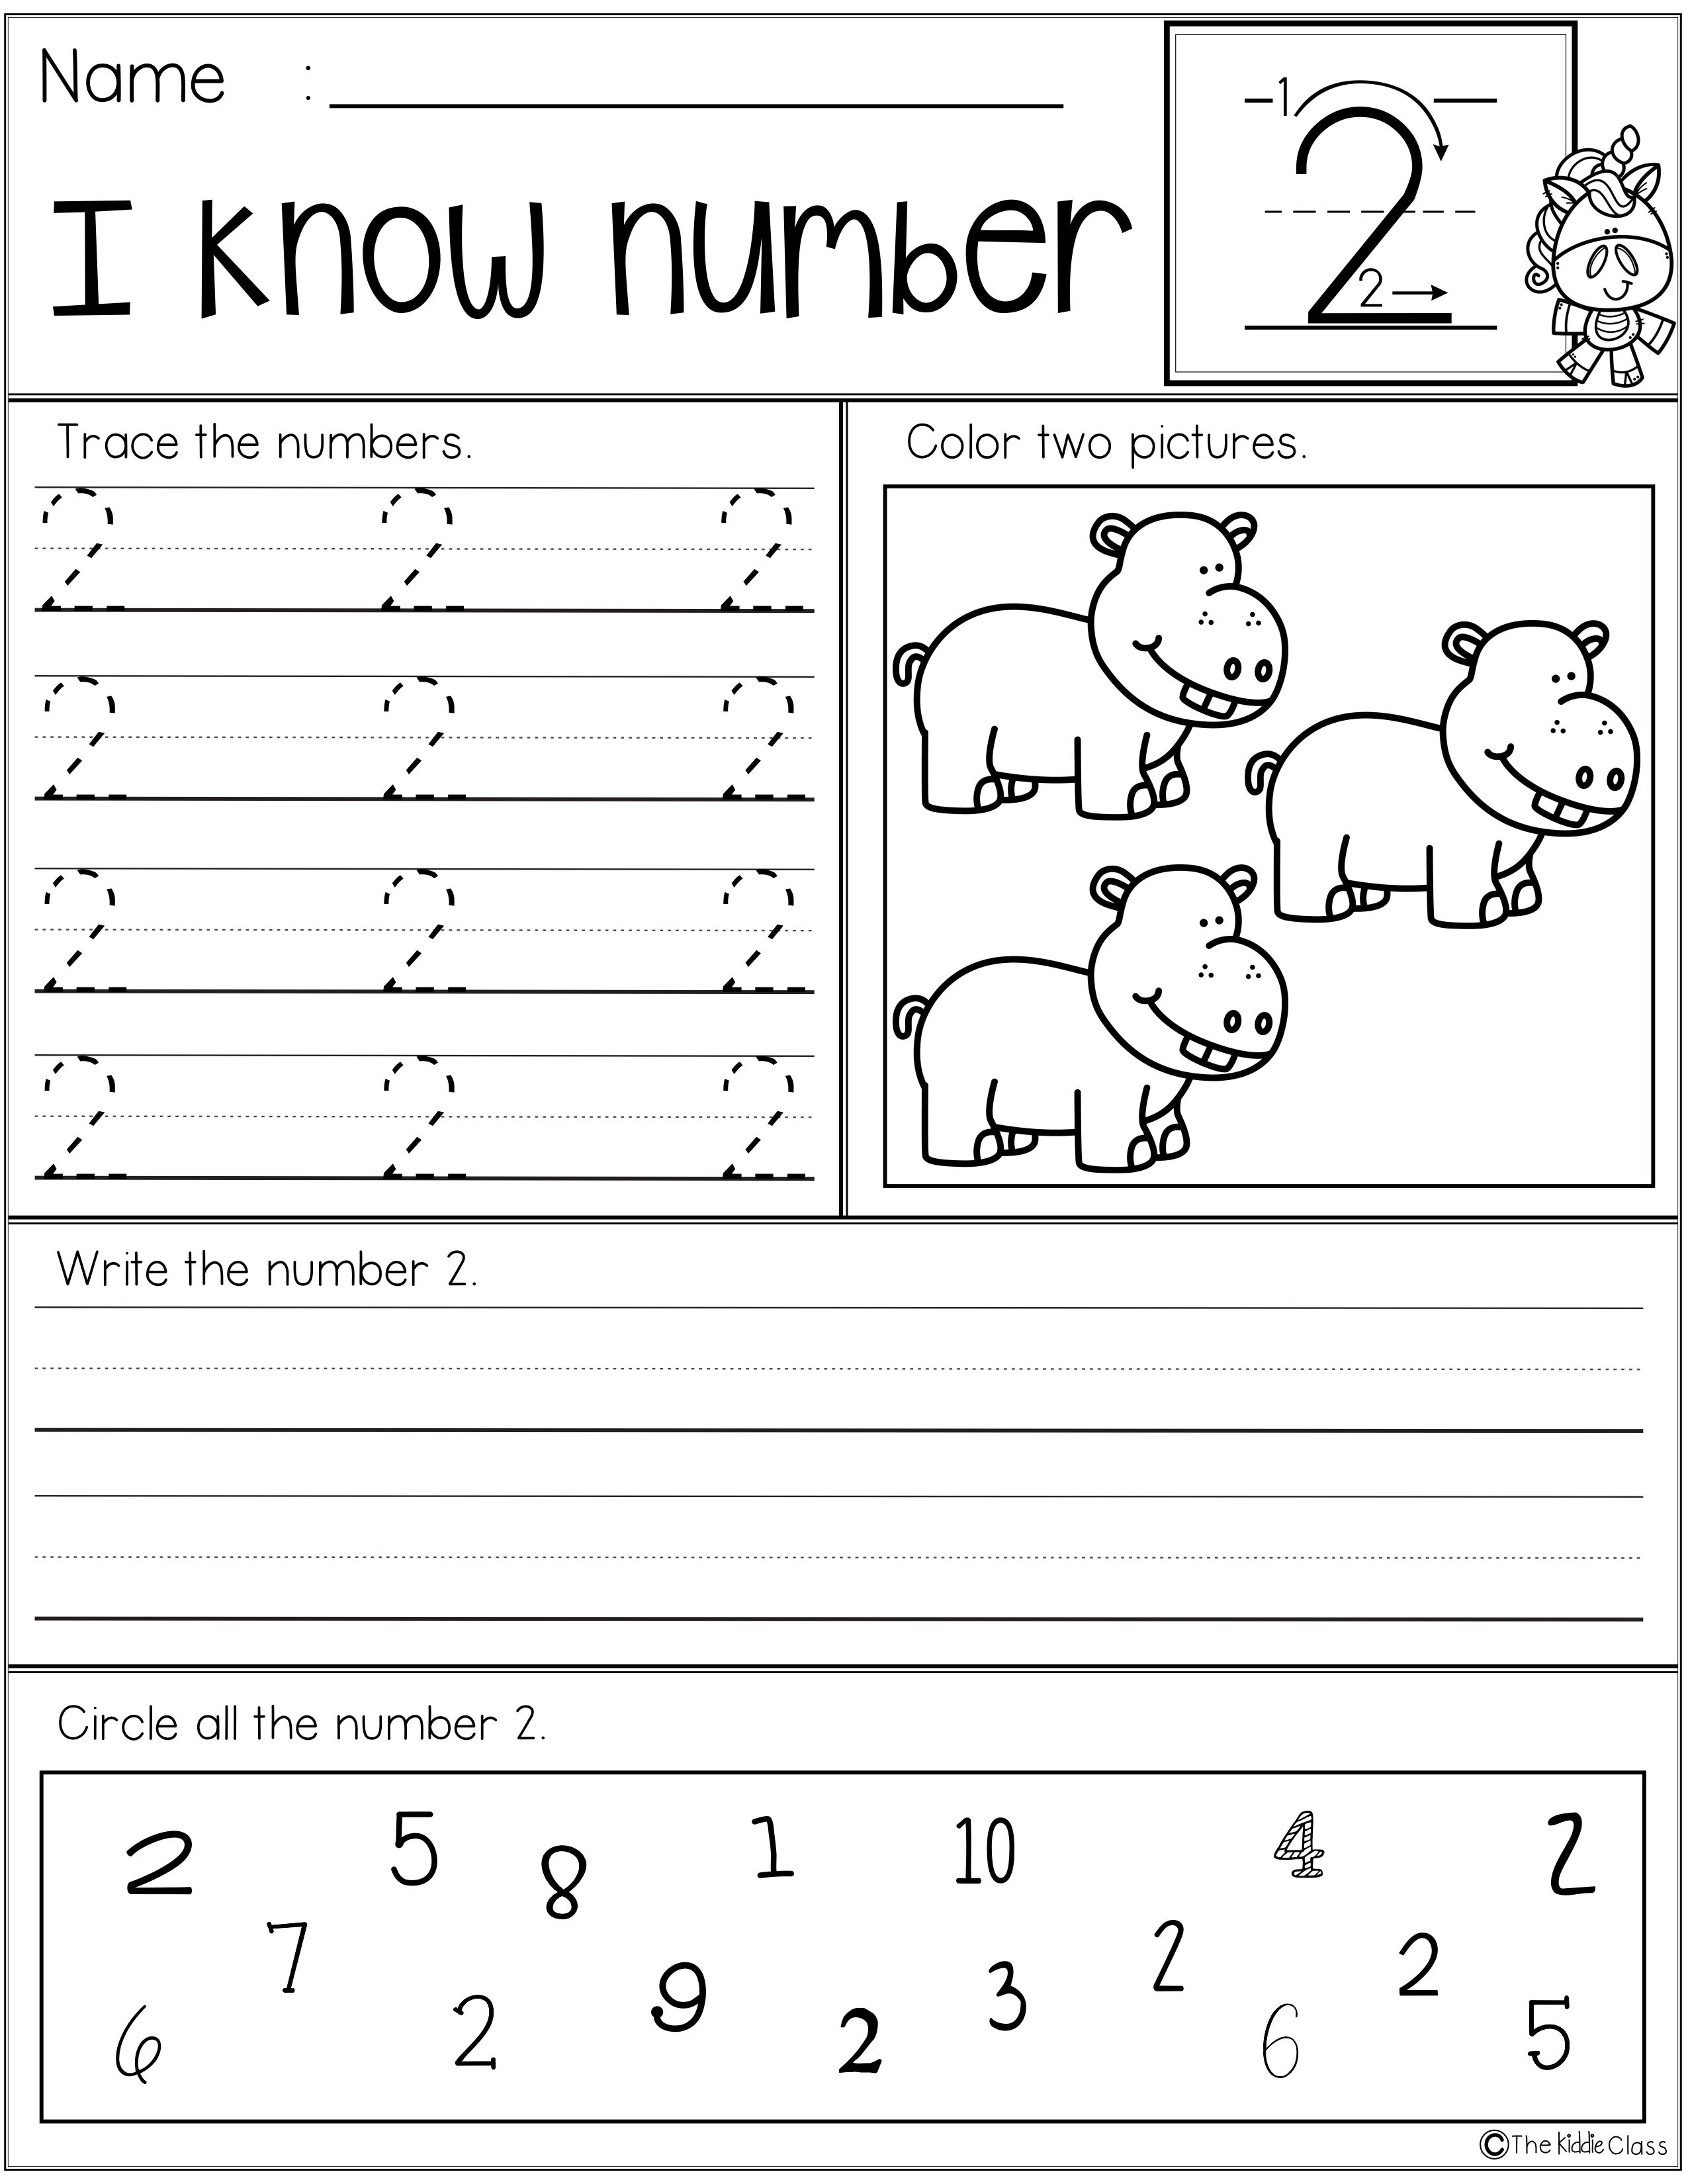 Number Practice Printables 1 20 There Are 20 Printable